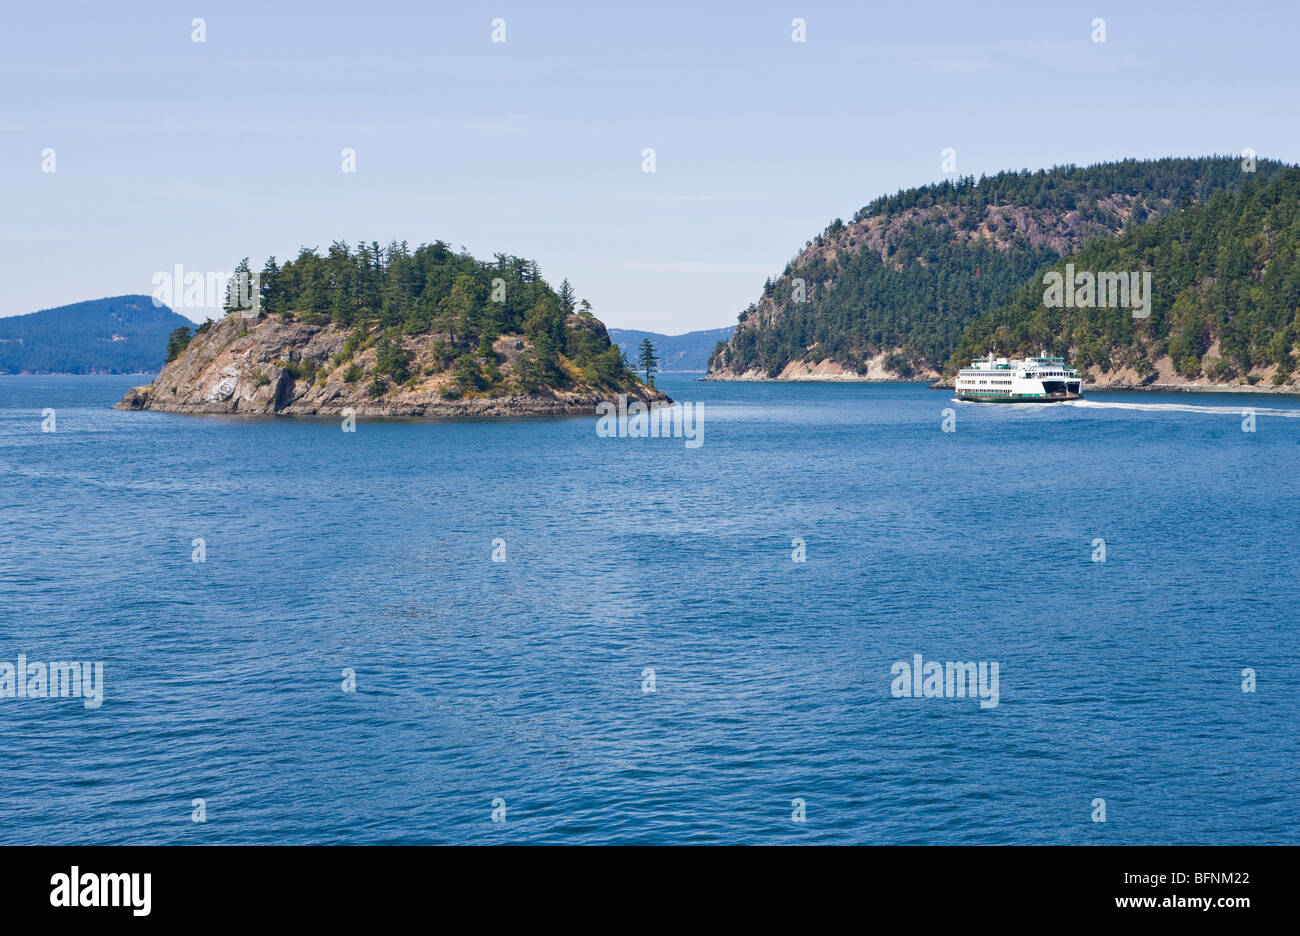 A washington State ferry cruises between two islands in the San Juan Islands of Washington State, USA. - Stock Image